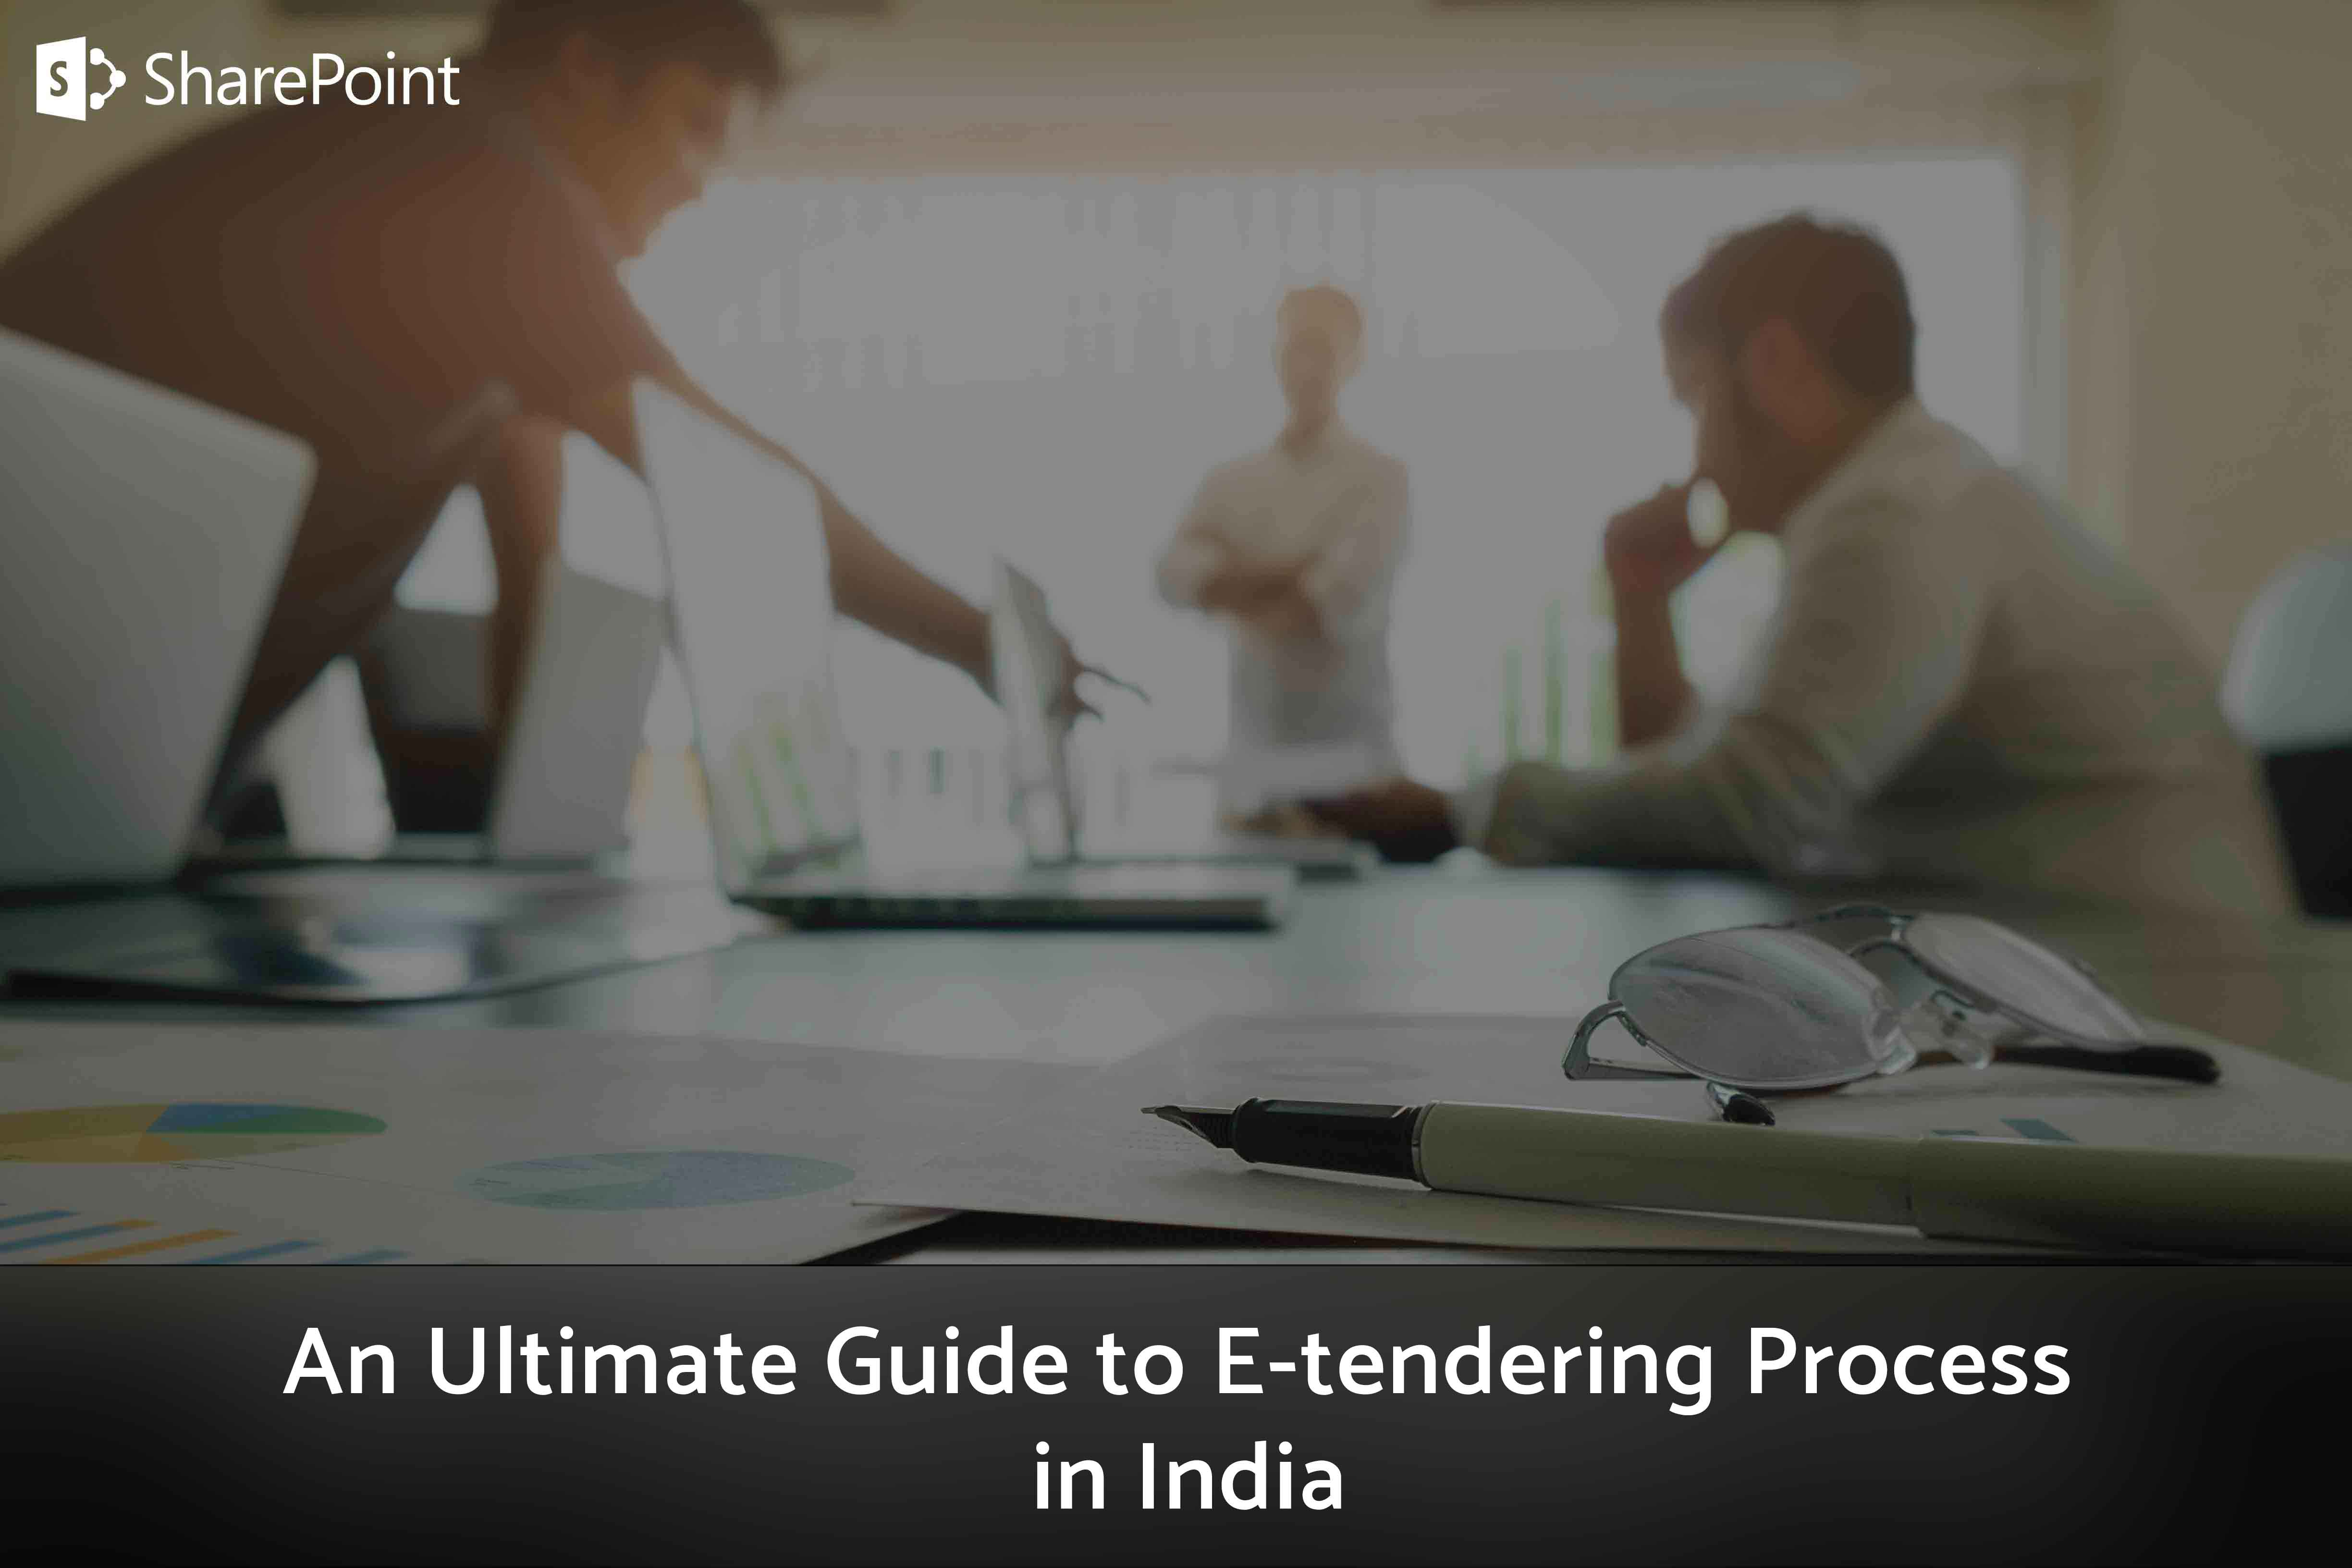 E-tendering Process in India